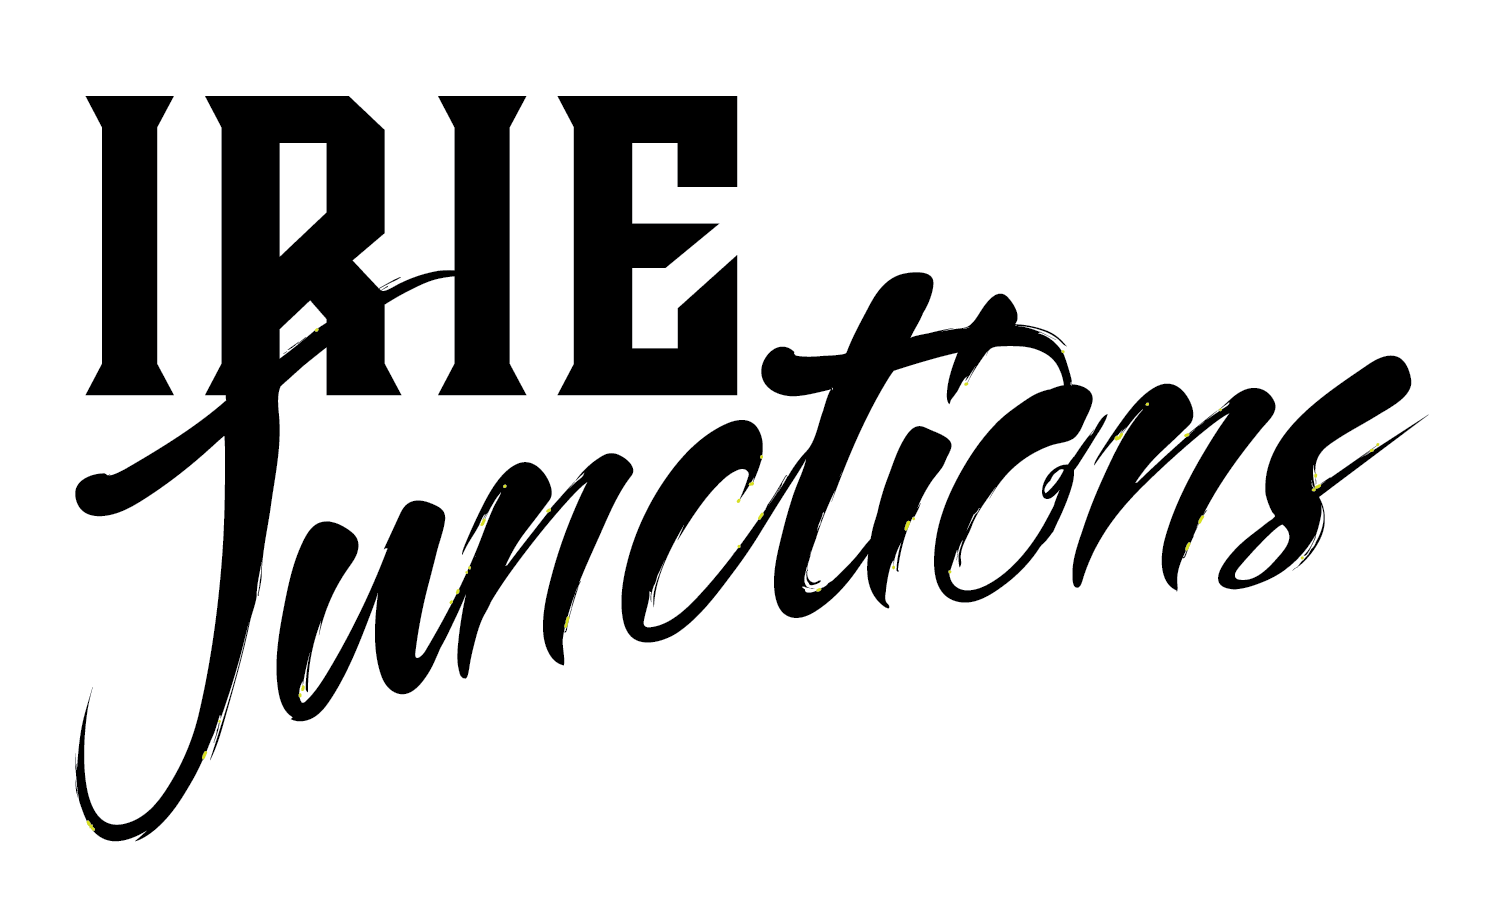 Irie Junctions